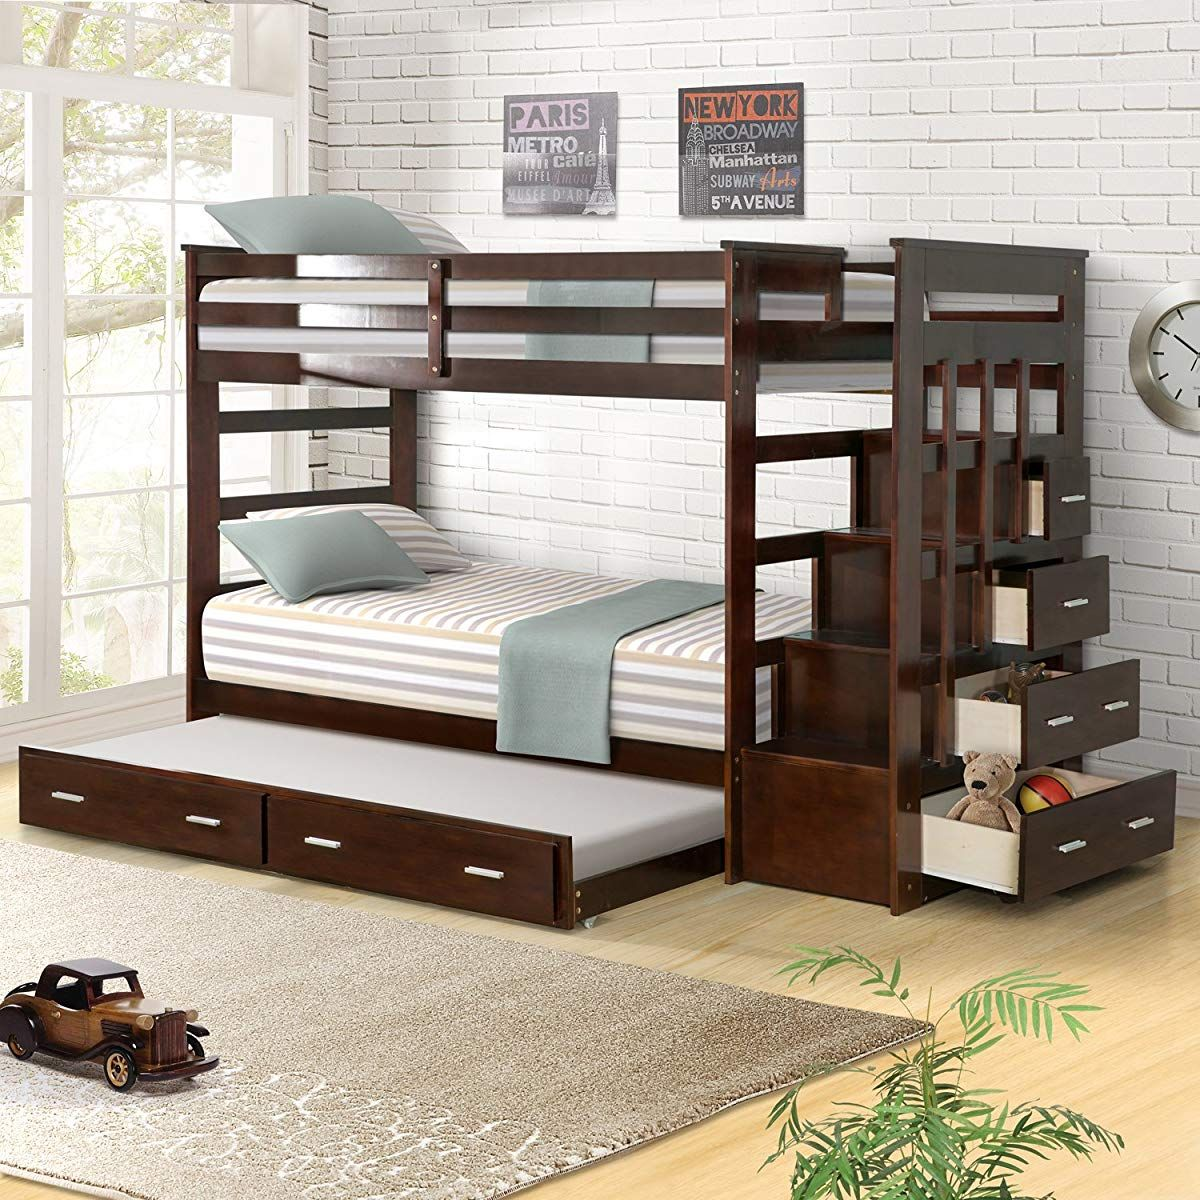 Harper Bright Designs Captains Trundle Bunk Bed With Storage